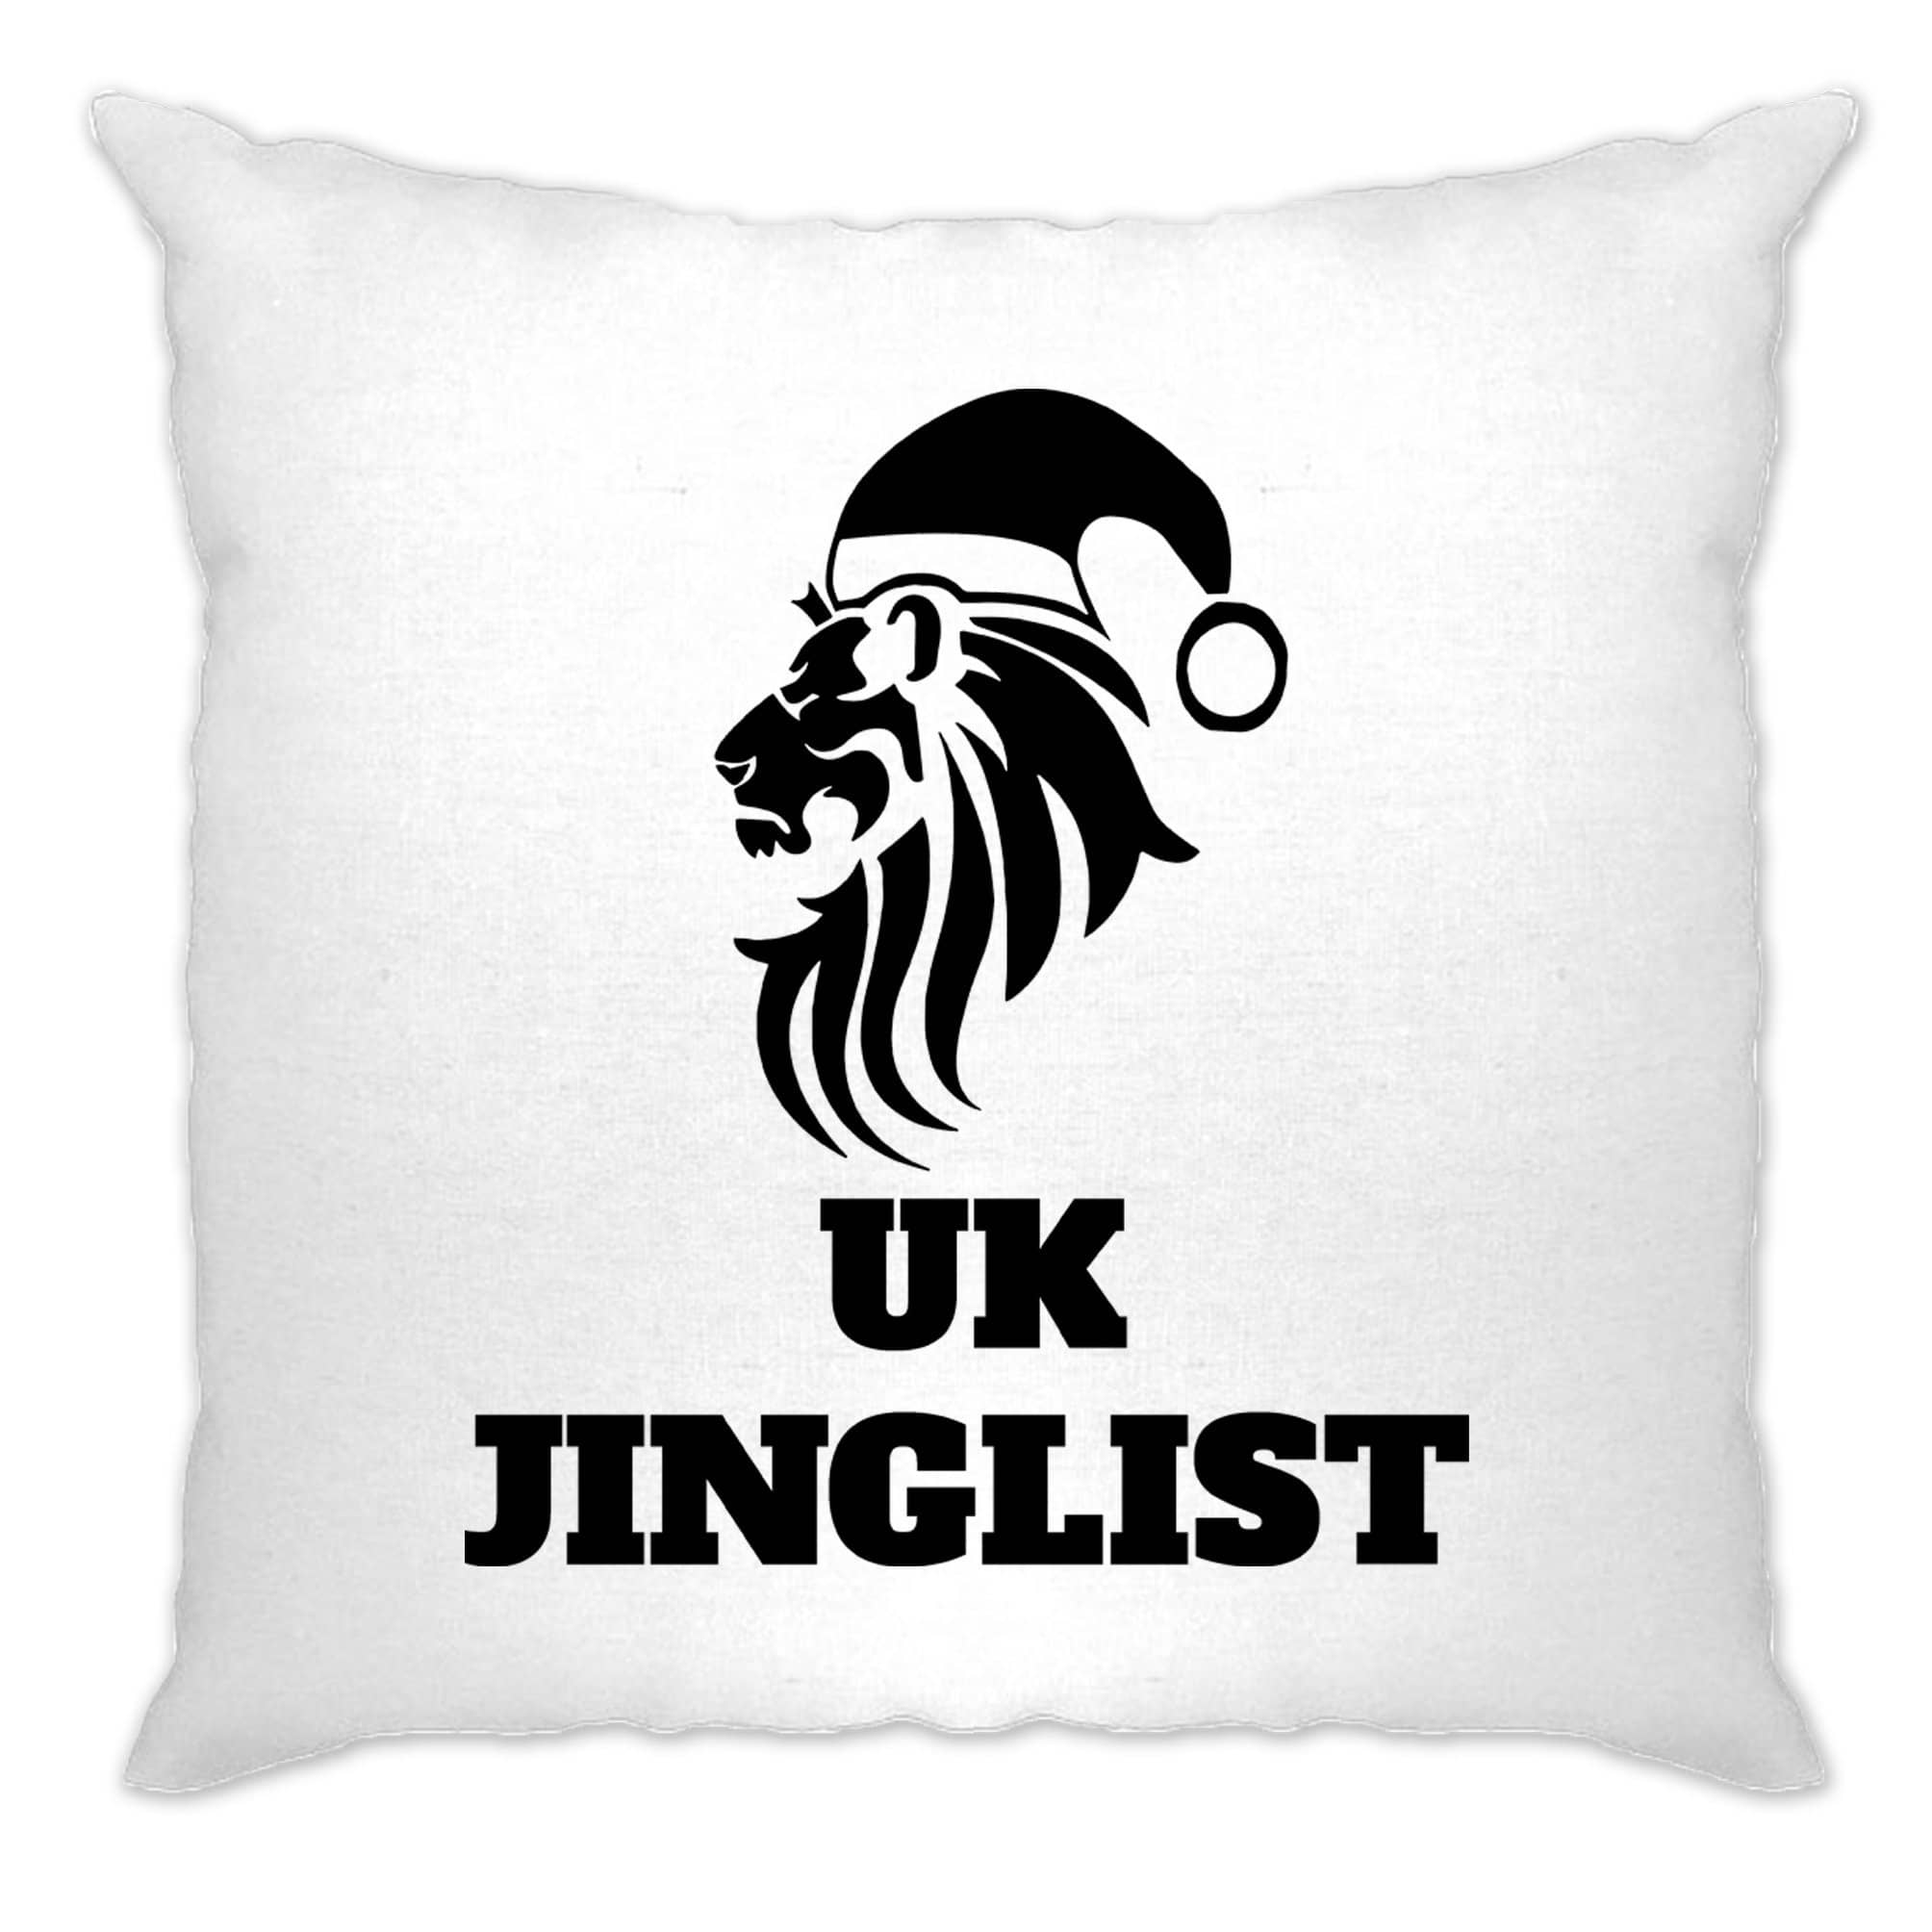 Christmas Parody Cushion Cover UK Jinglist Lion